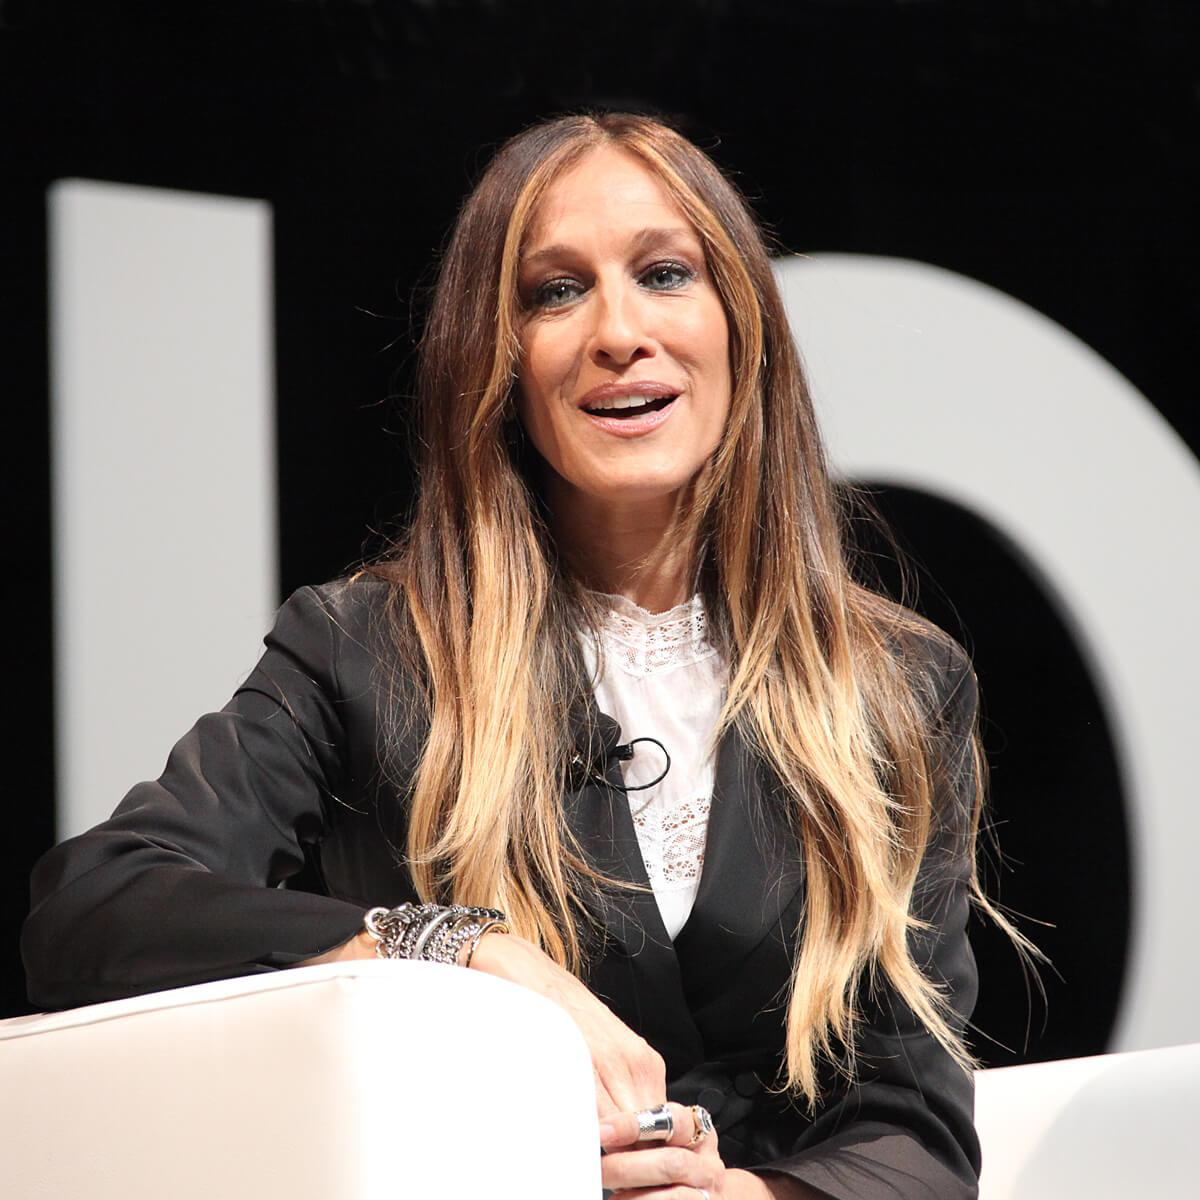 Portrait of American actress Sarah Jessica Parker by Julian Hanford